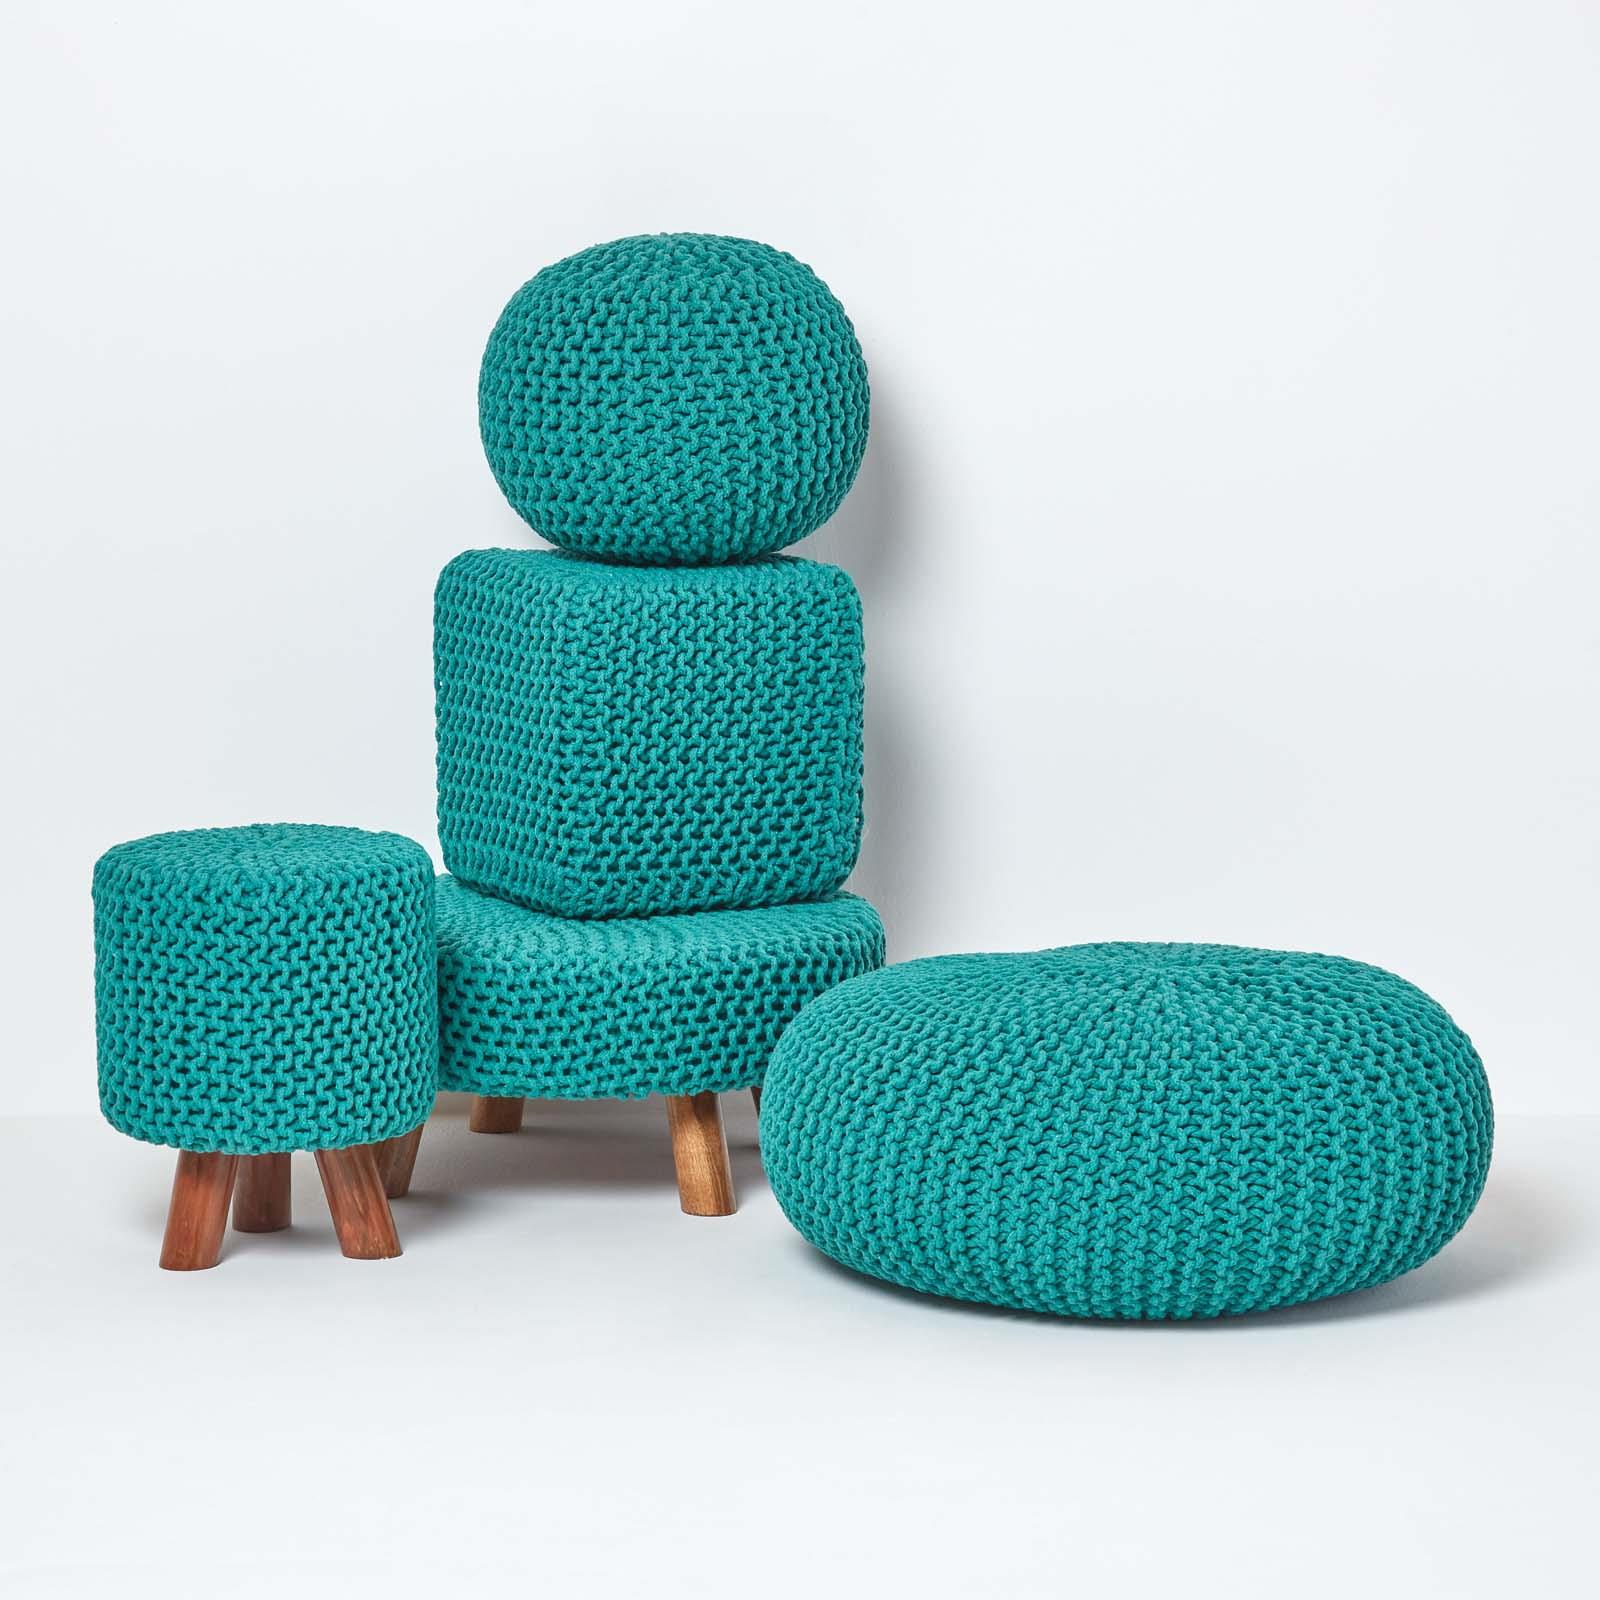 Hand-Knitted-100-Cotton-Pouffes-Round-Sphere-Or-Cube-Square-Chunky-Footstools thumbnail 197